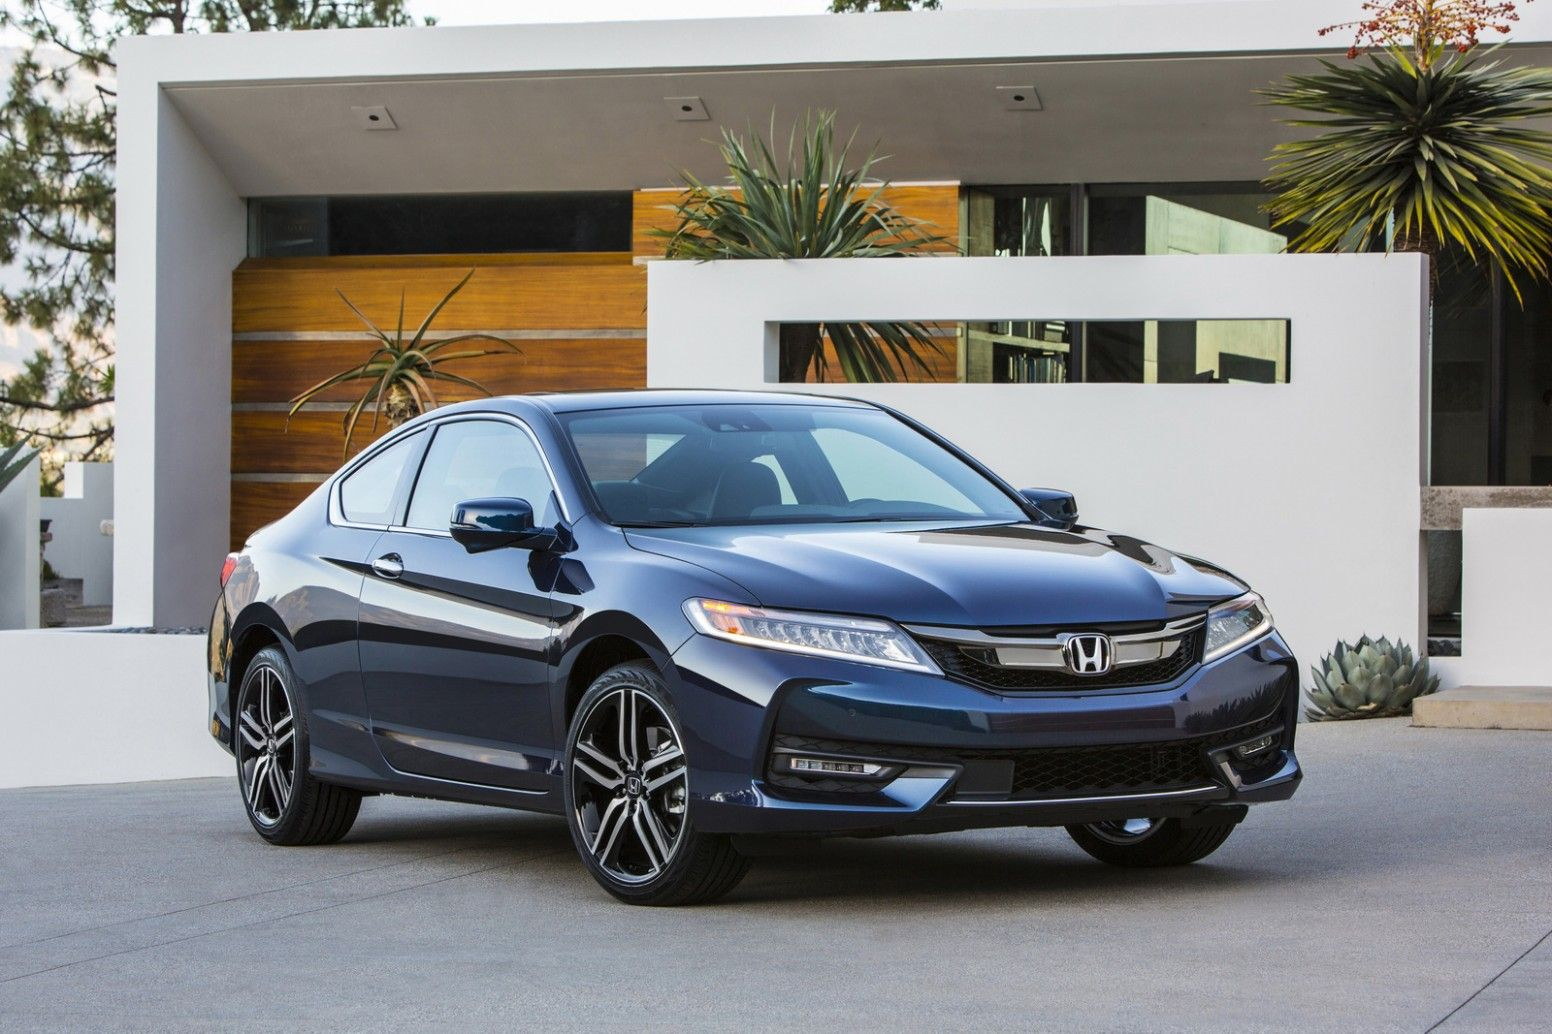 2020 Acura Station Wagon Review And Release Accord coupe